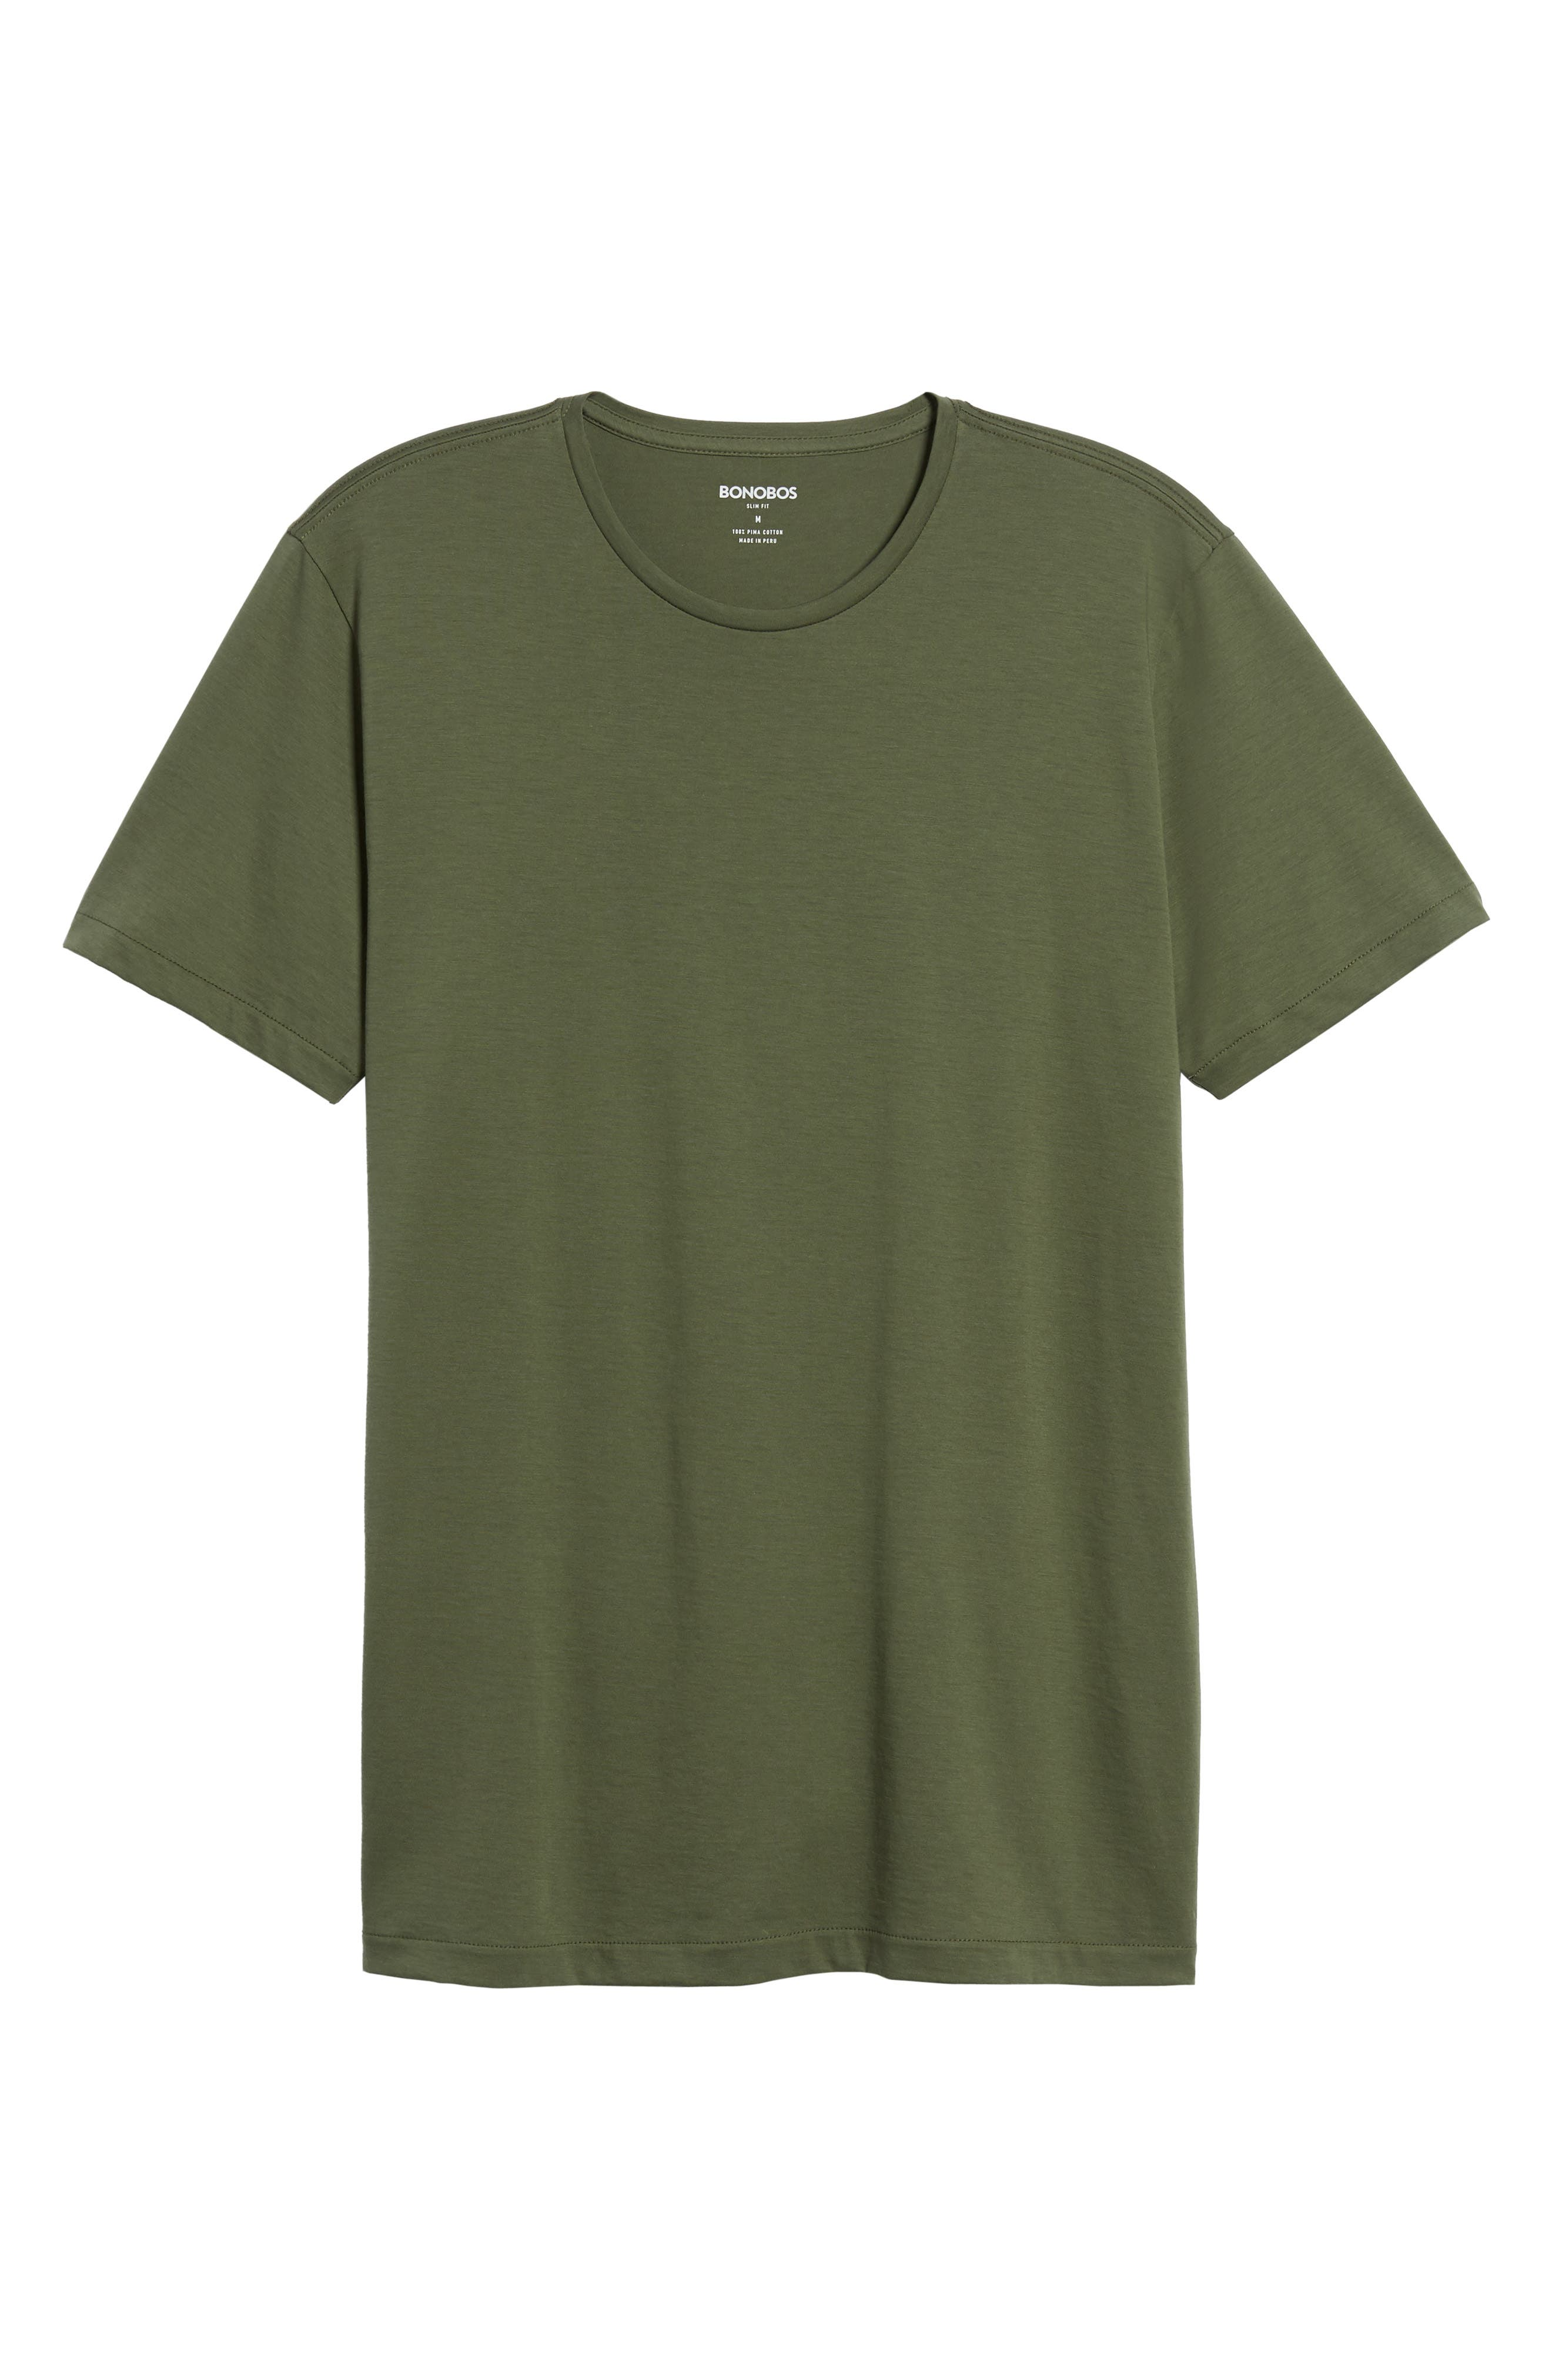 Refined T-Shirt,                             Alternate thumbnail 6, color,                             300